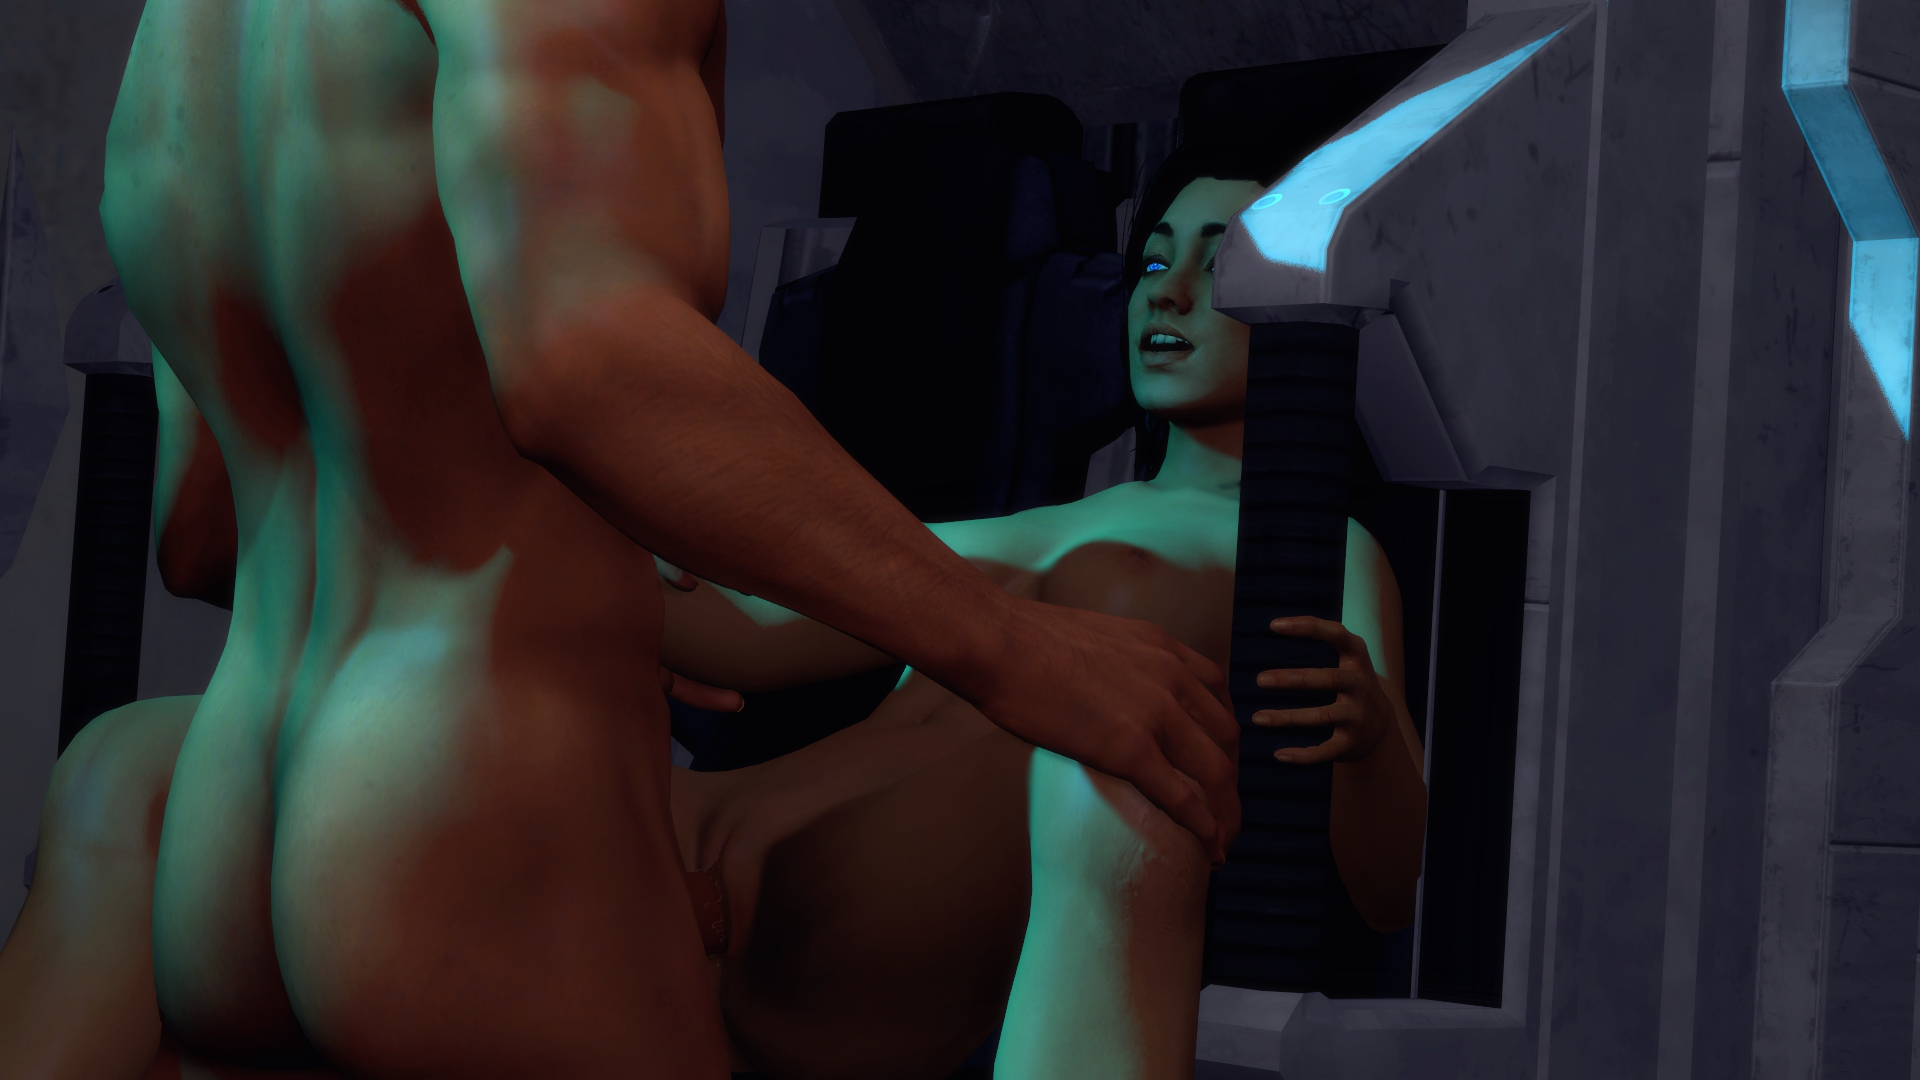 Mass effect 3d sex videos nackt clip